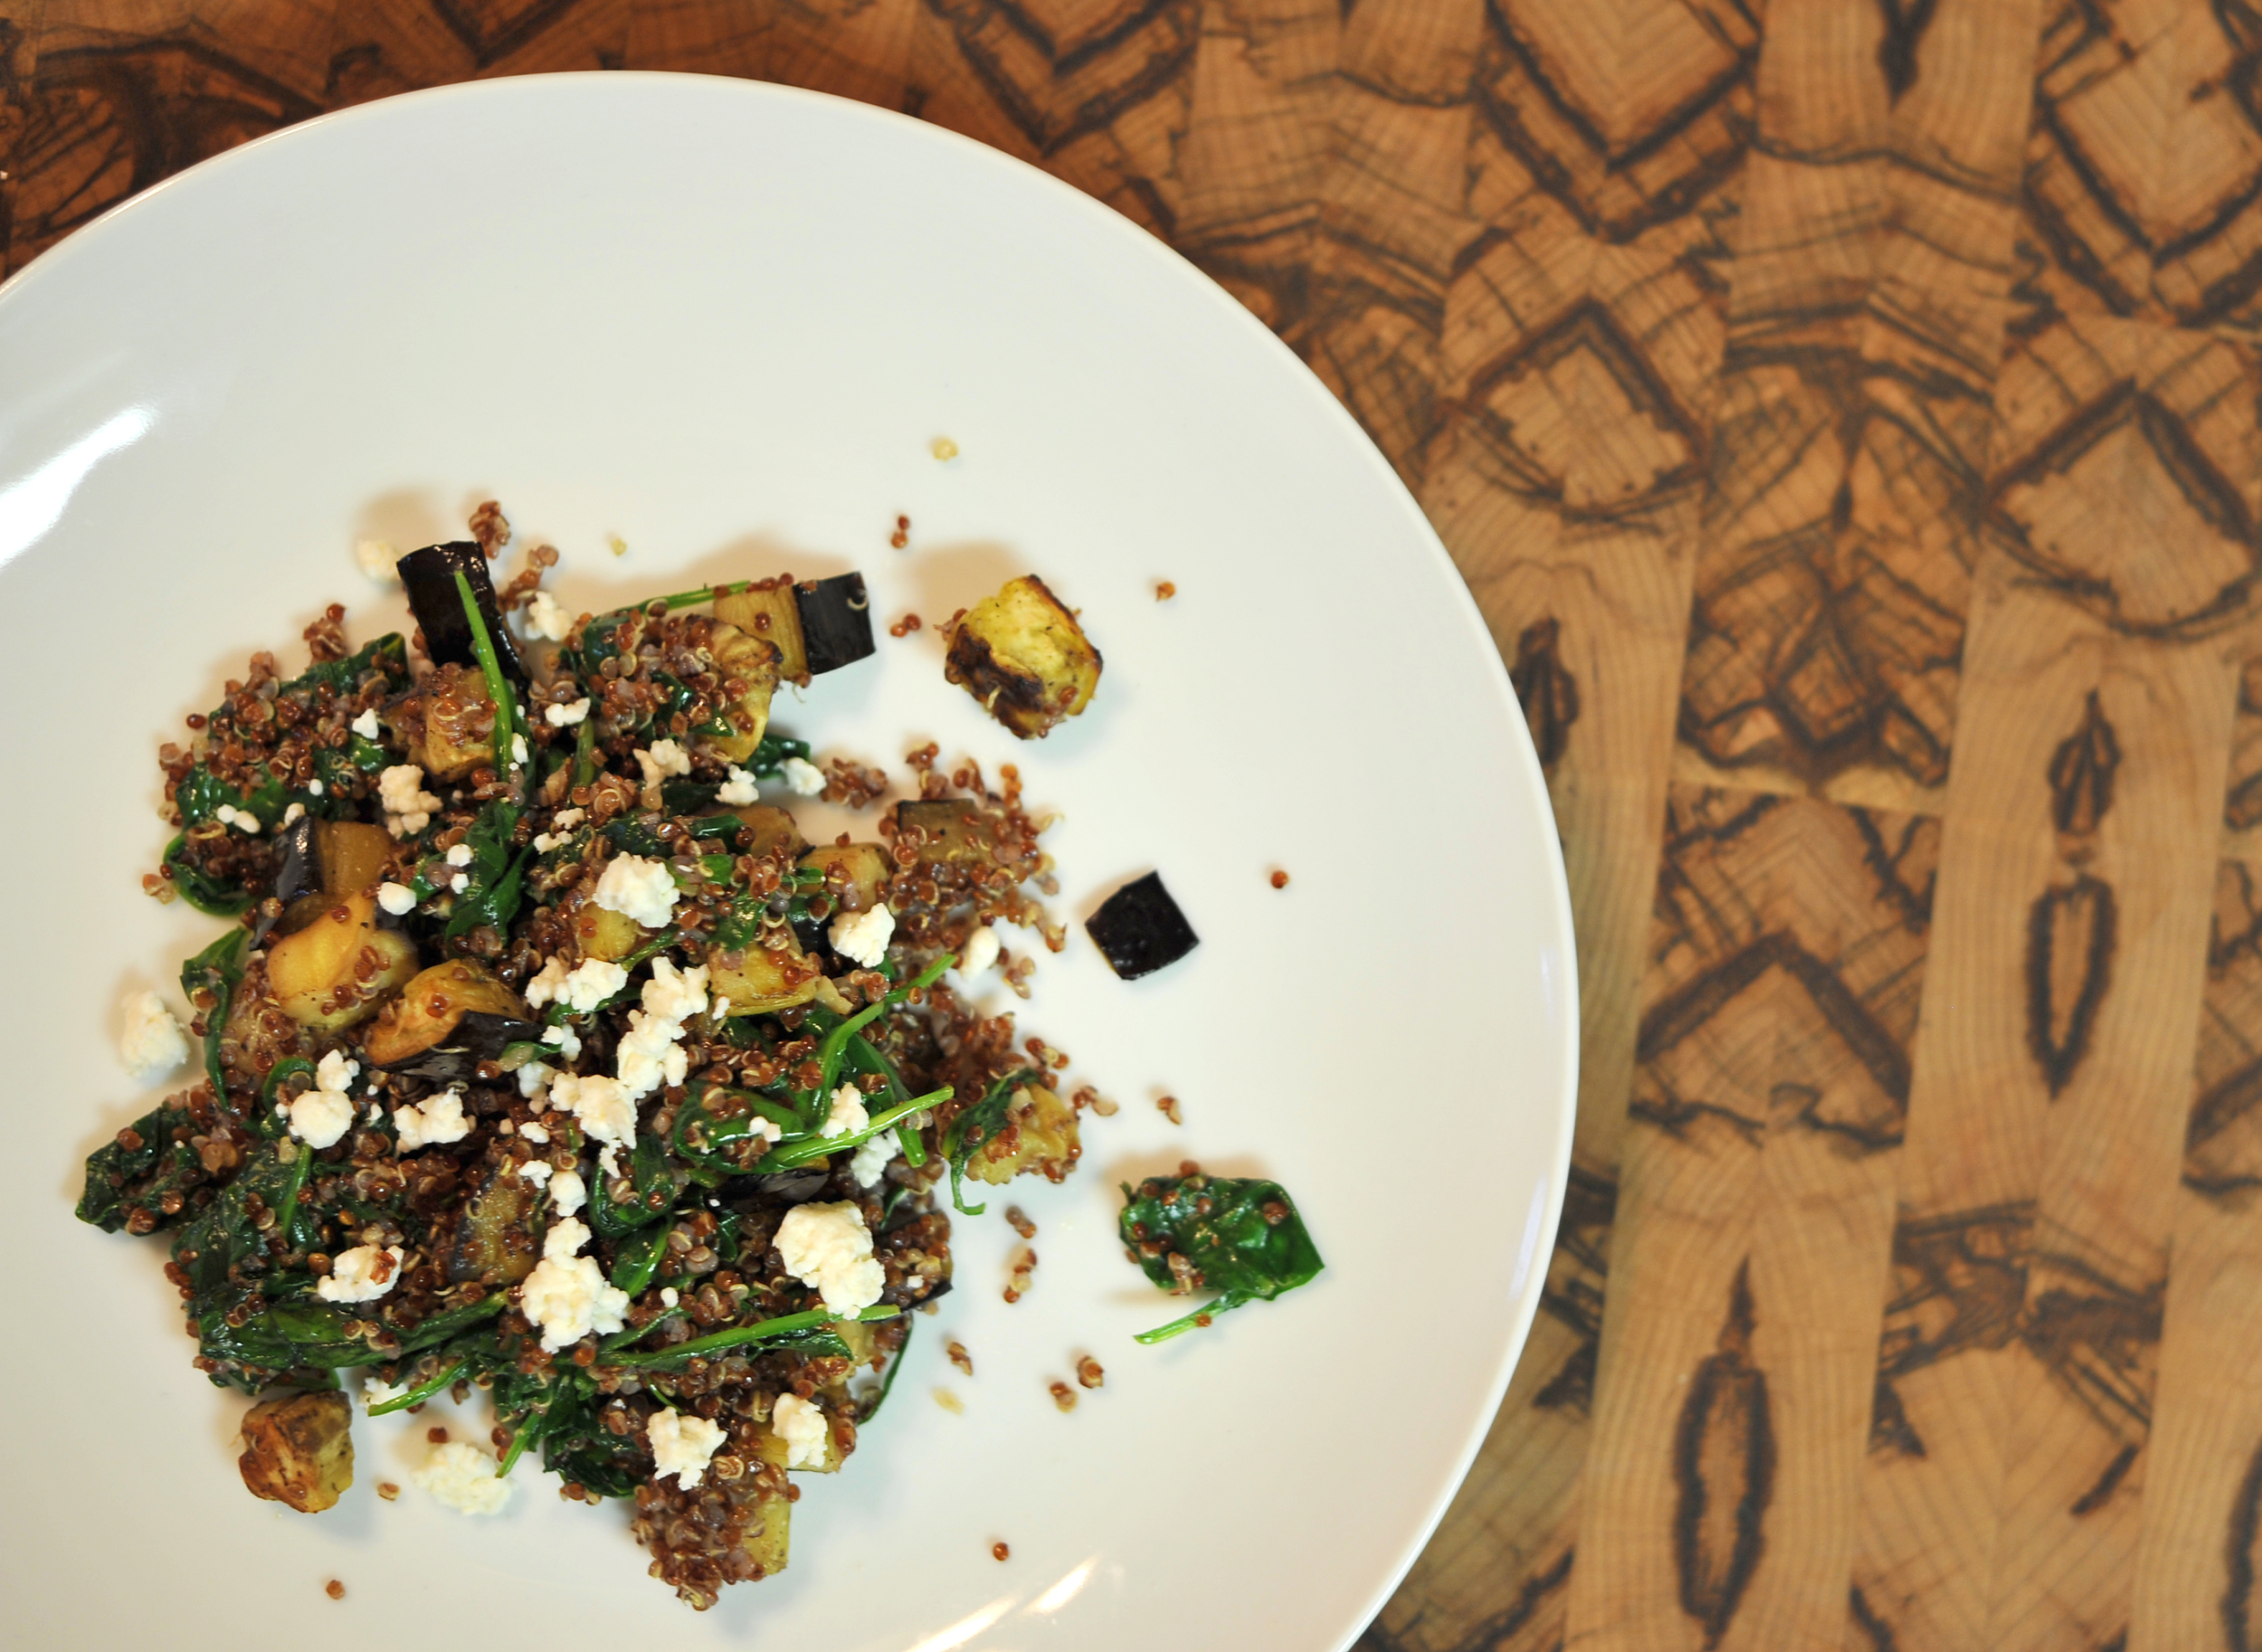 chicago-food-blog-roasted-eggplant-with-quinoa-spinach-and-feta-4.jpg